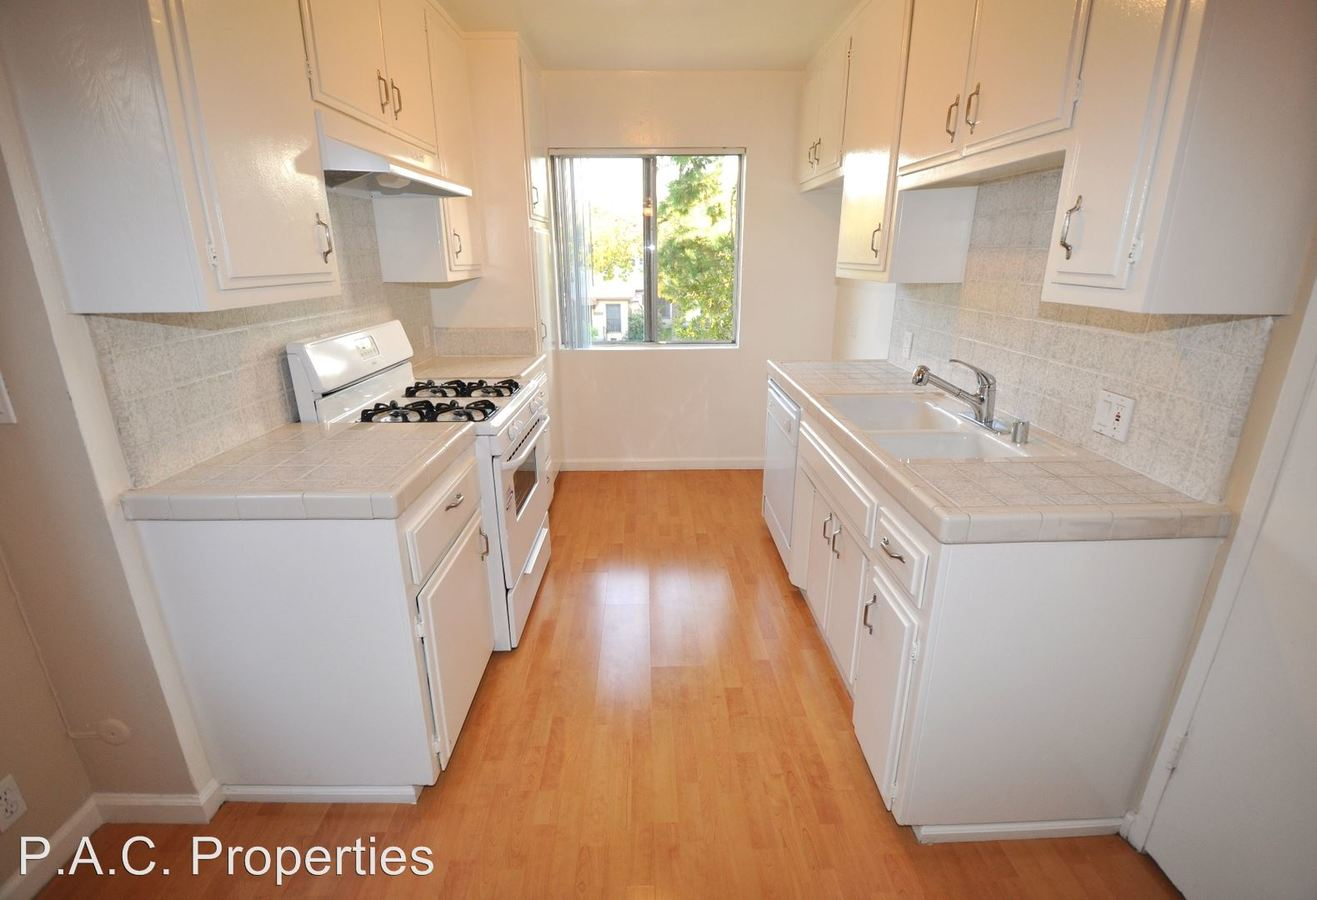 2 Bedrooms 2 Bathrooms Apartment for rent at 10745 Hortense Avenue in North Hollywood, CA